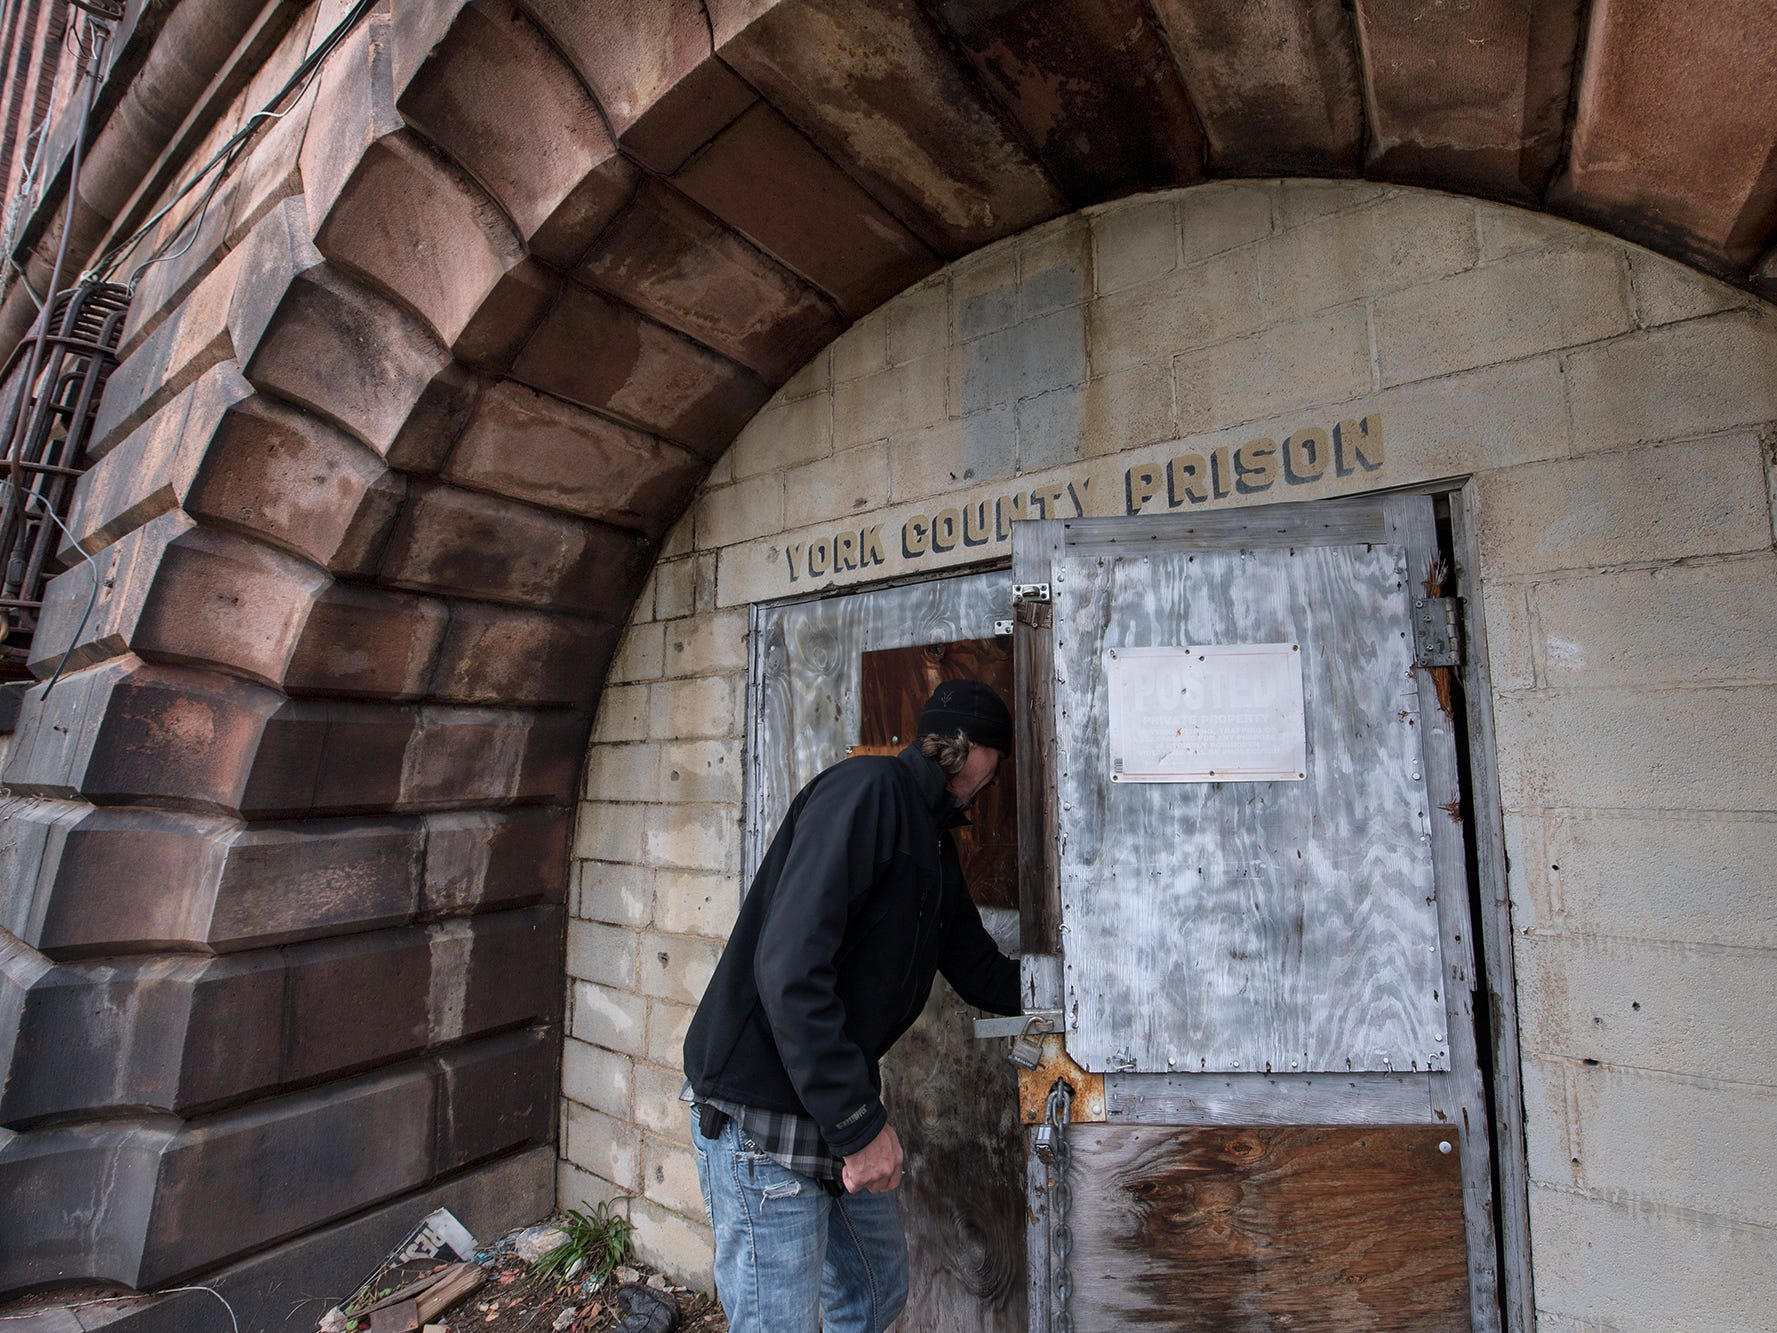 Here is the front entrance to the old York County Prison.